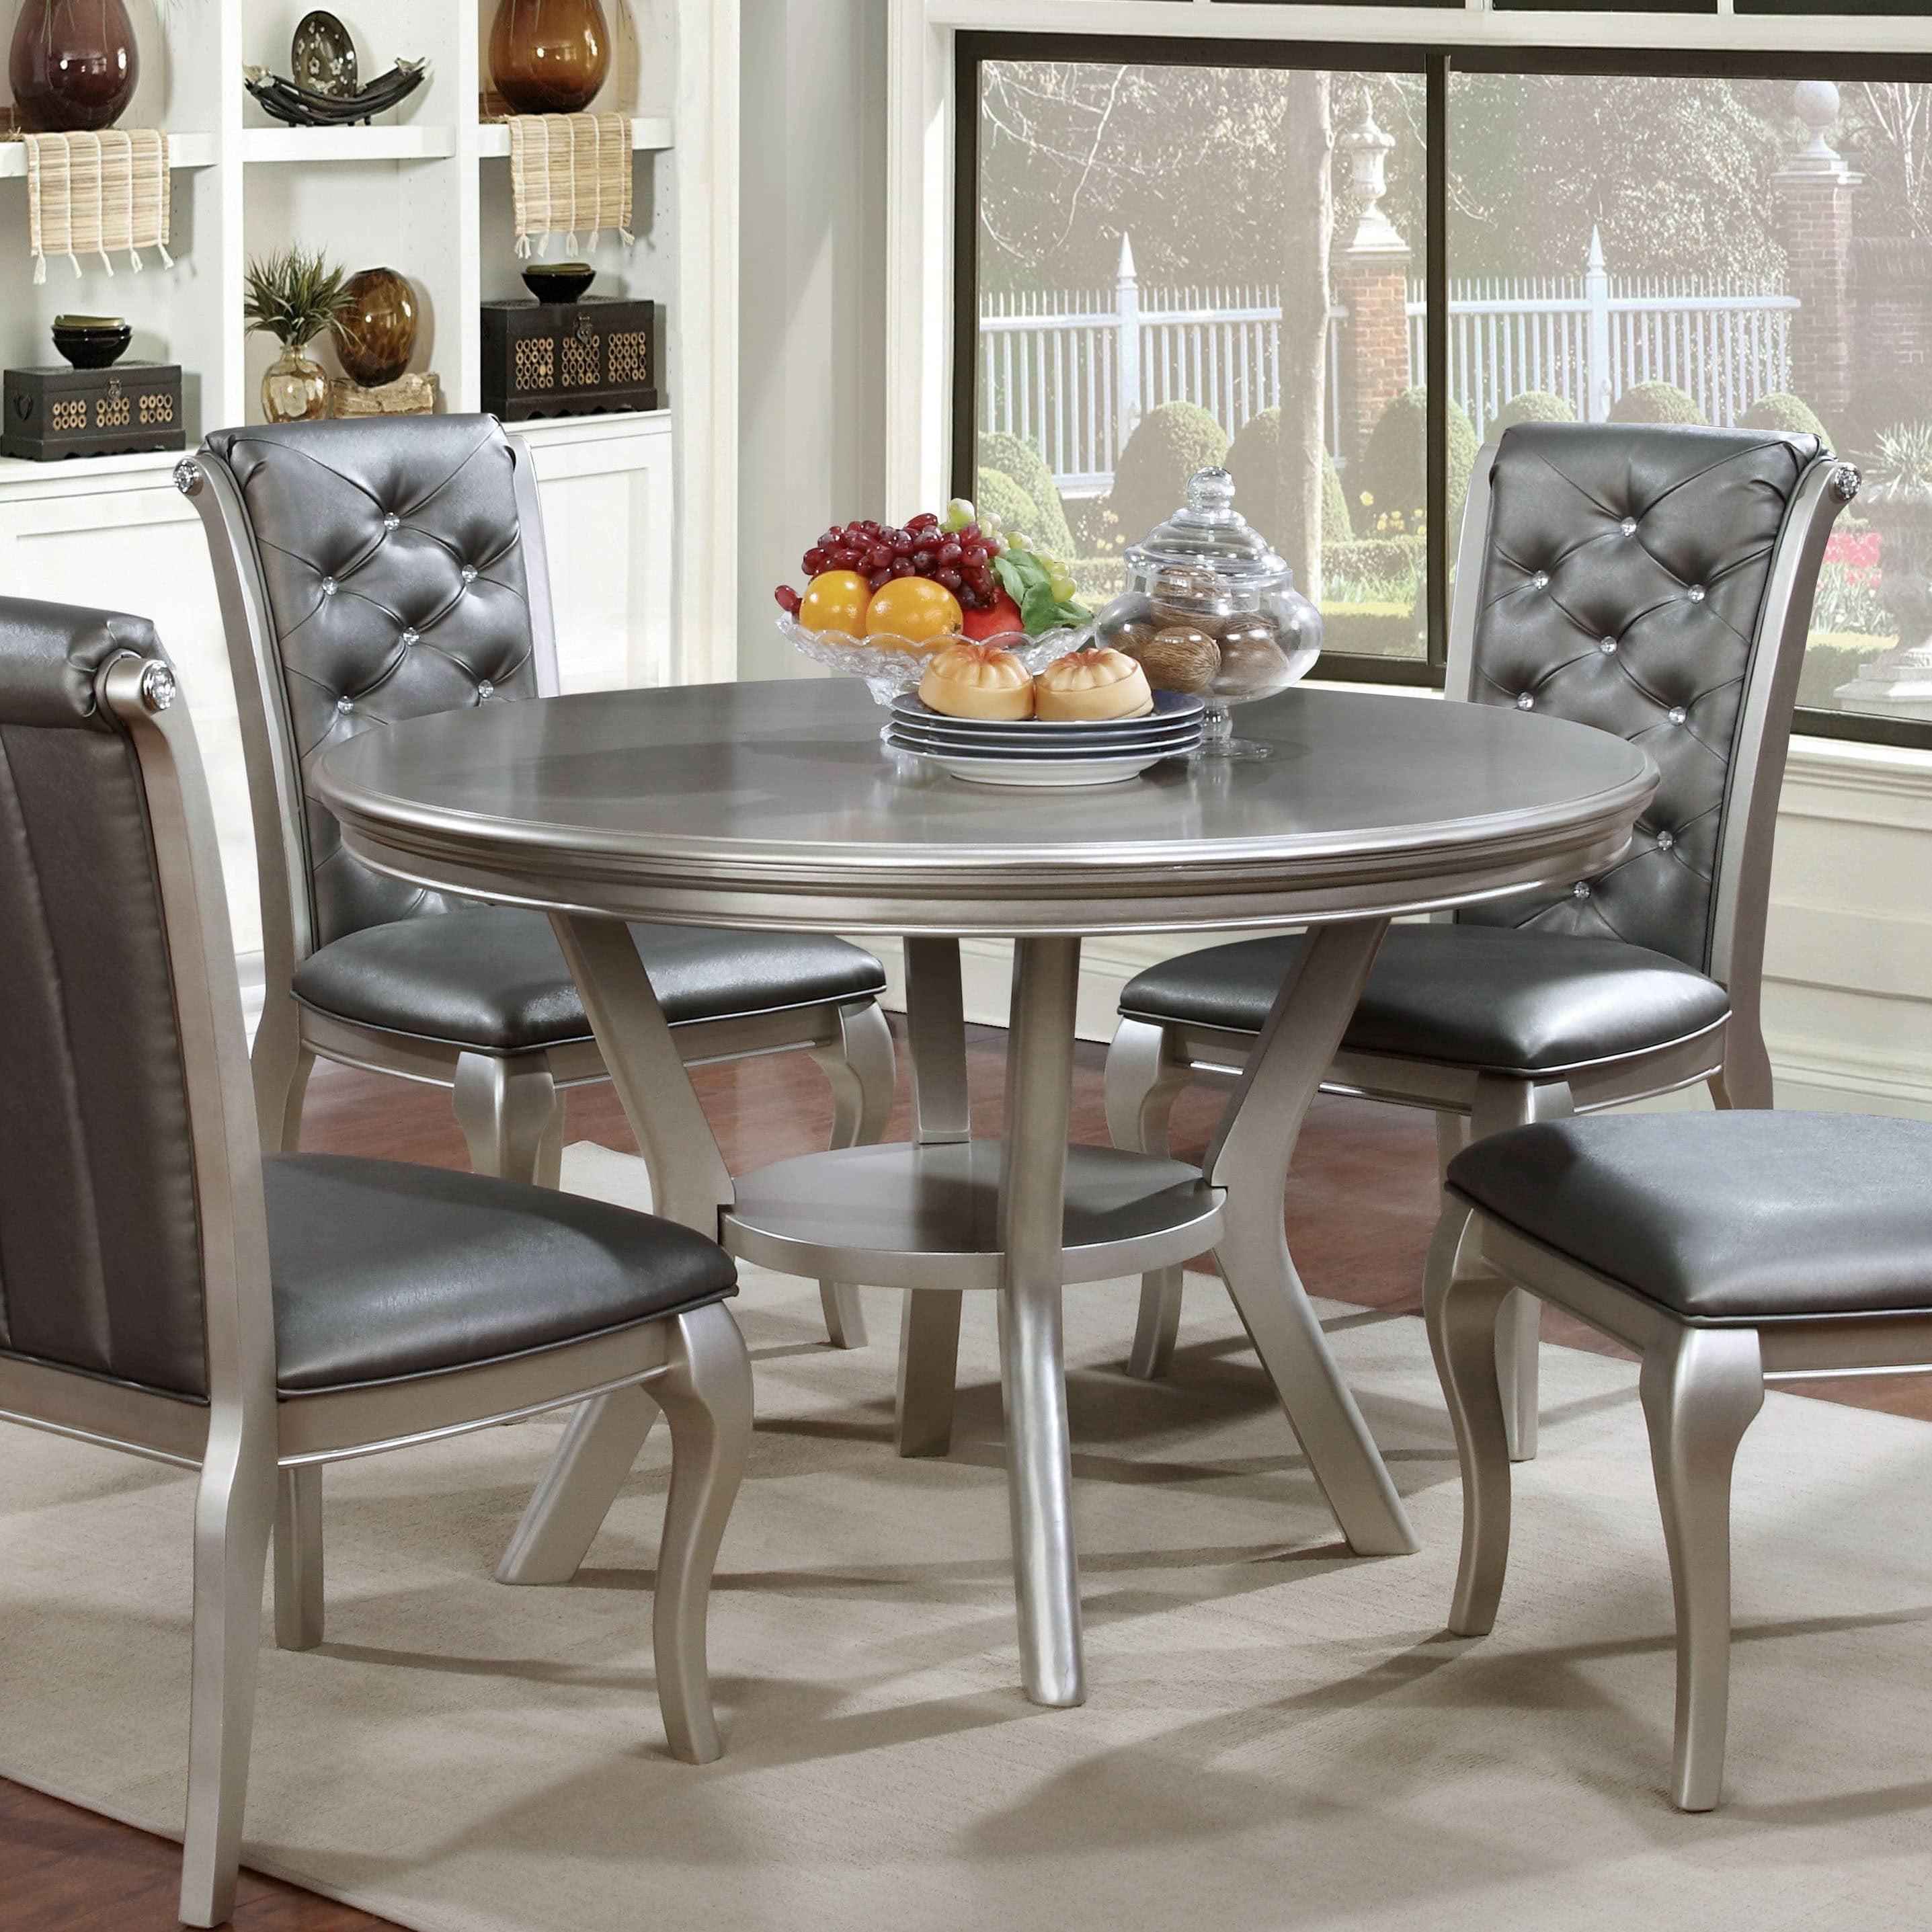 Furniture Of America Valencia Champagne Gold Round Dining Table By